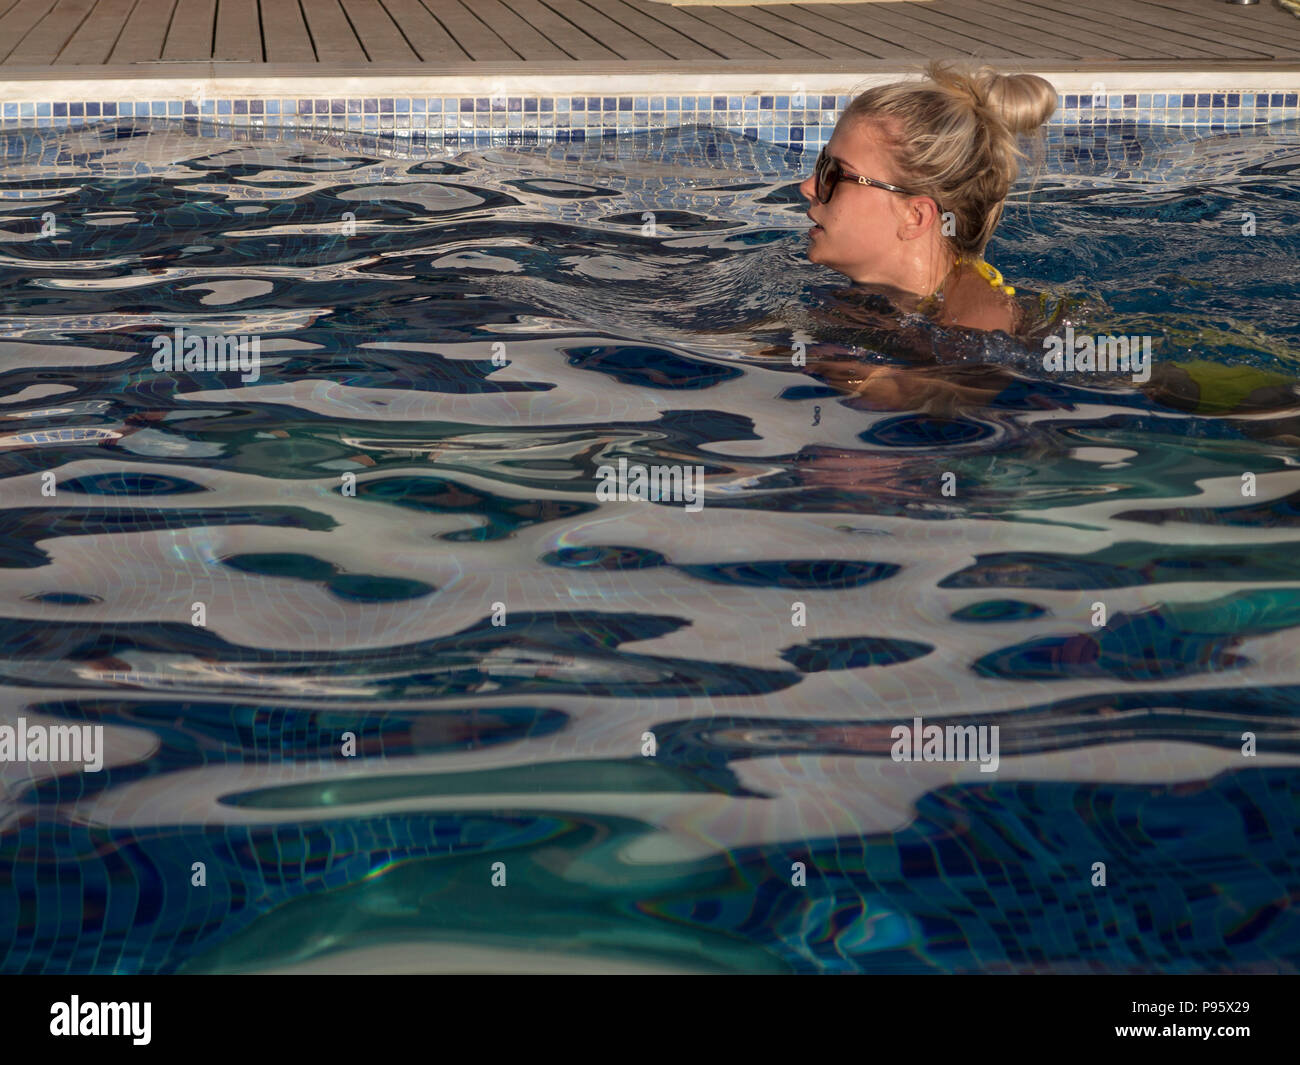 A beautiful girl in a yellow bikini swims lengths of a pool in the summer - Stock Image